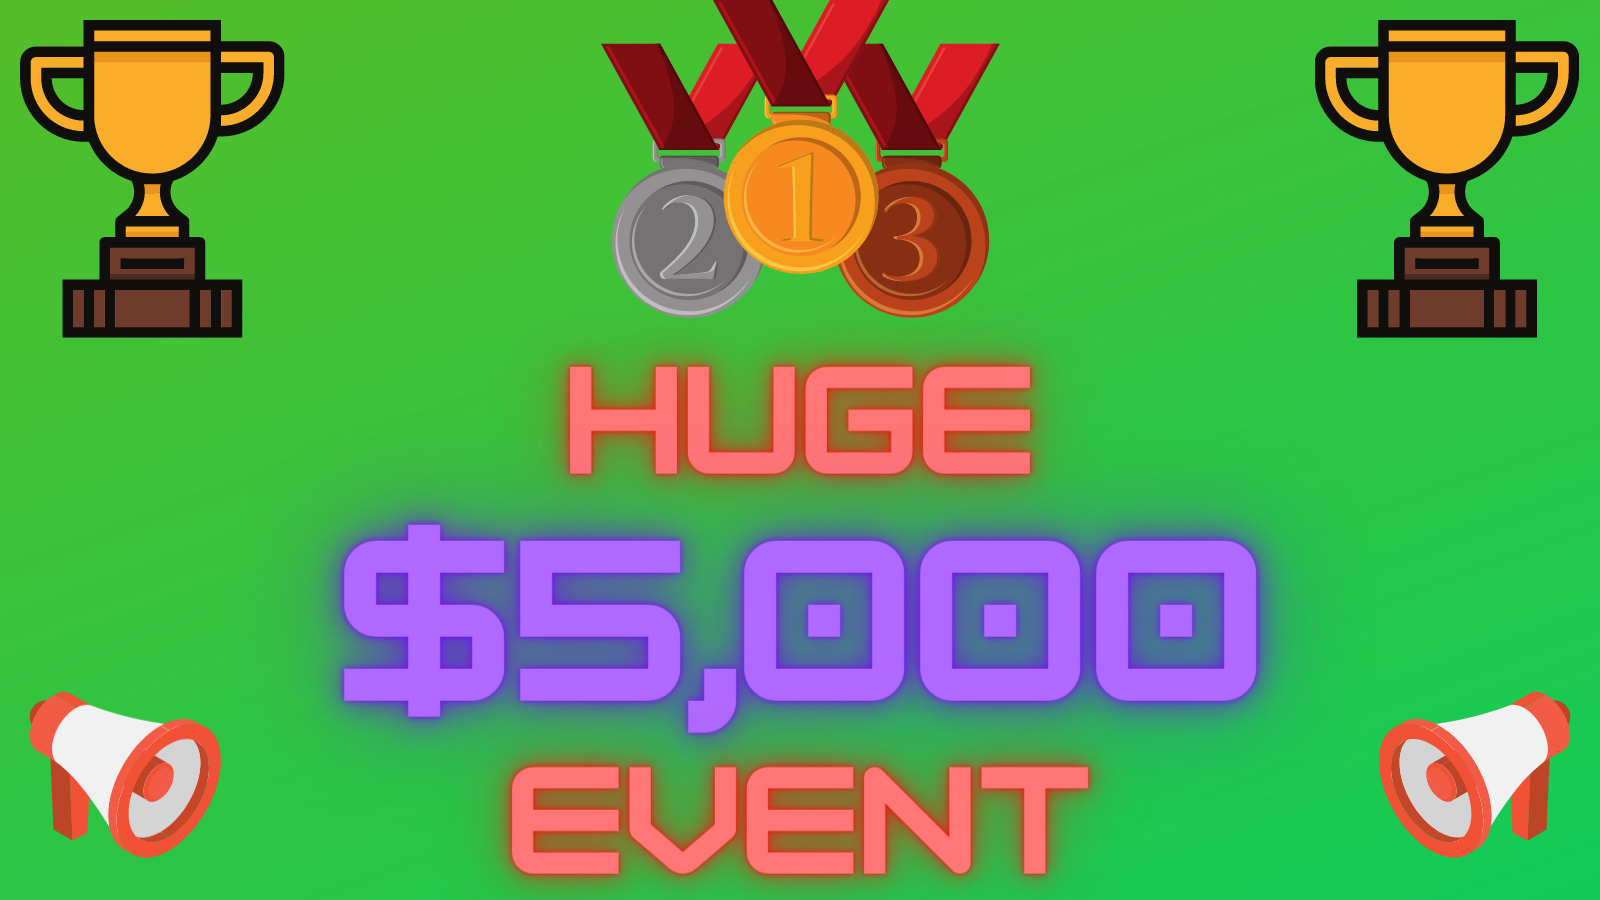 FreeSkins is Running a HUGE $5,000 Event That You Don't Want To Miss!